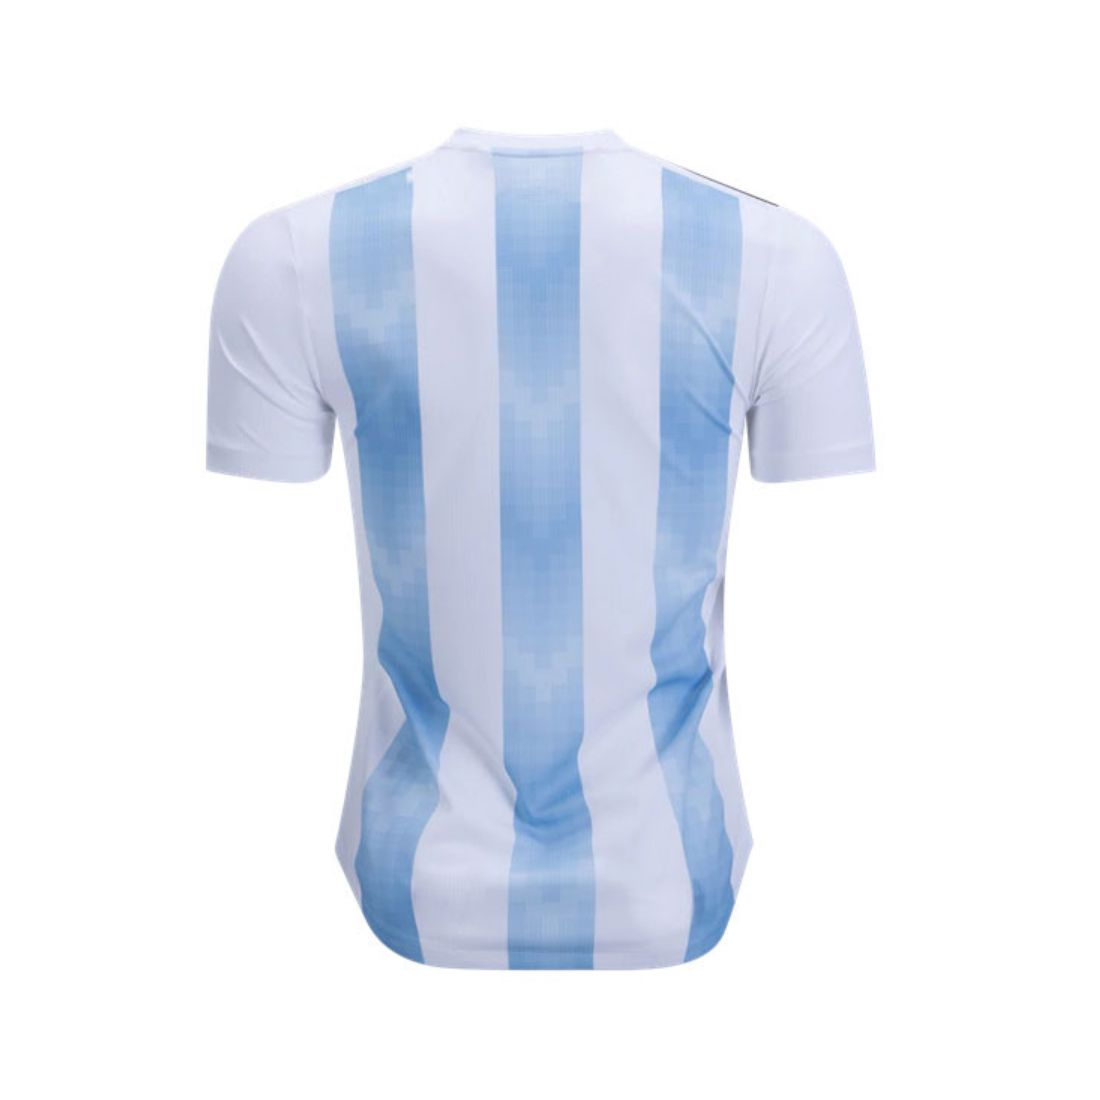 33c82035caa FIFA World Cup Argentina National Team Home Jersey: Buy Online at Best  Price on Snapdeal